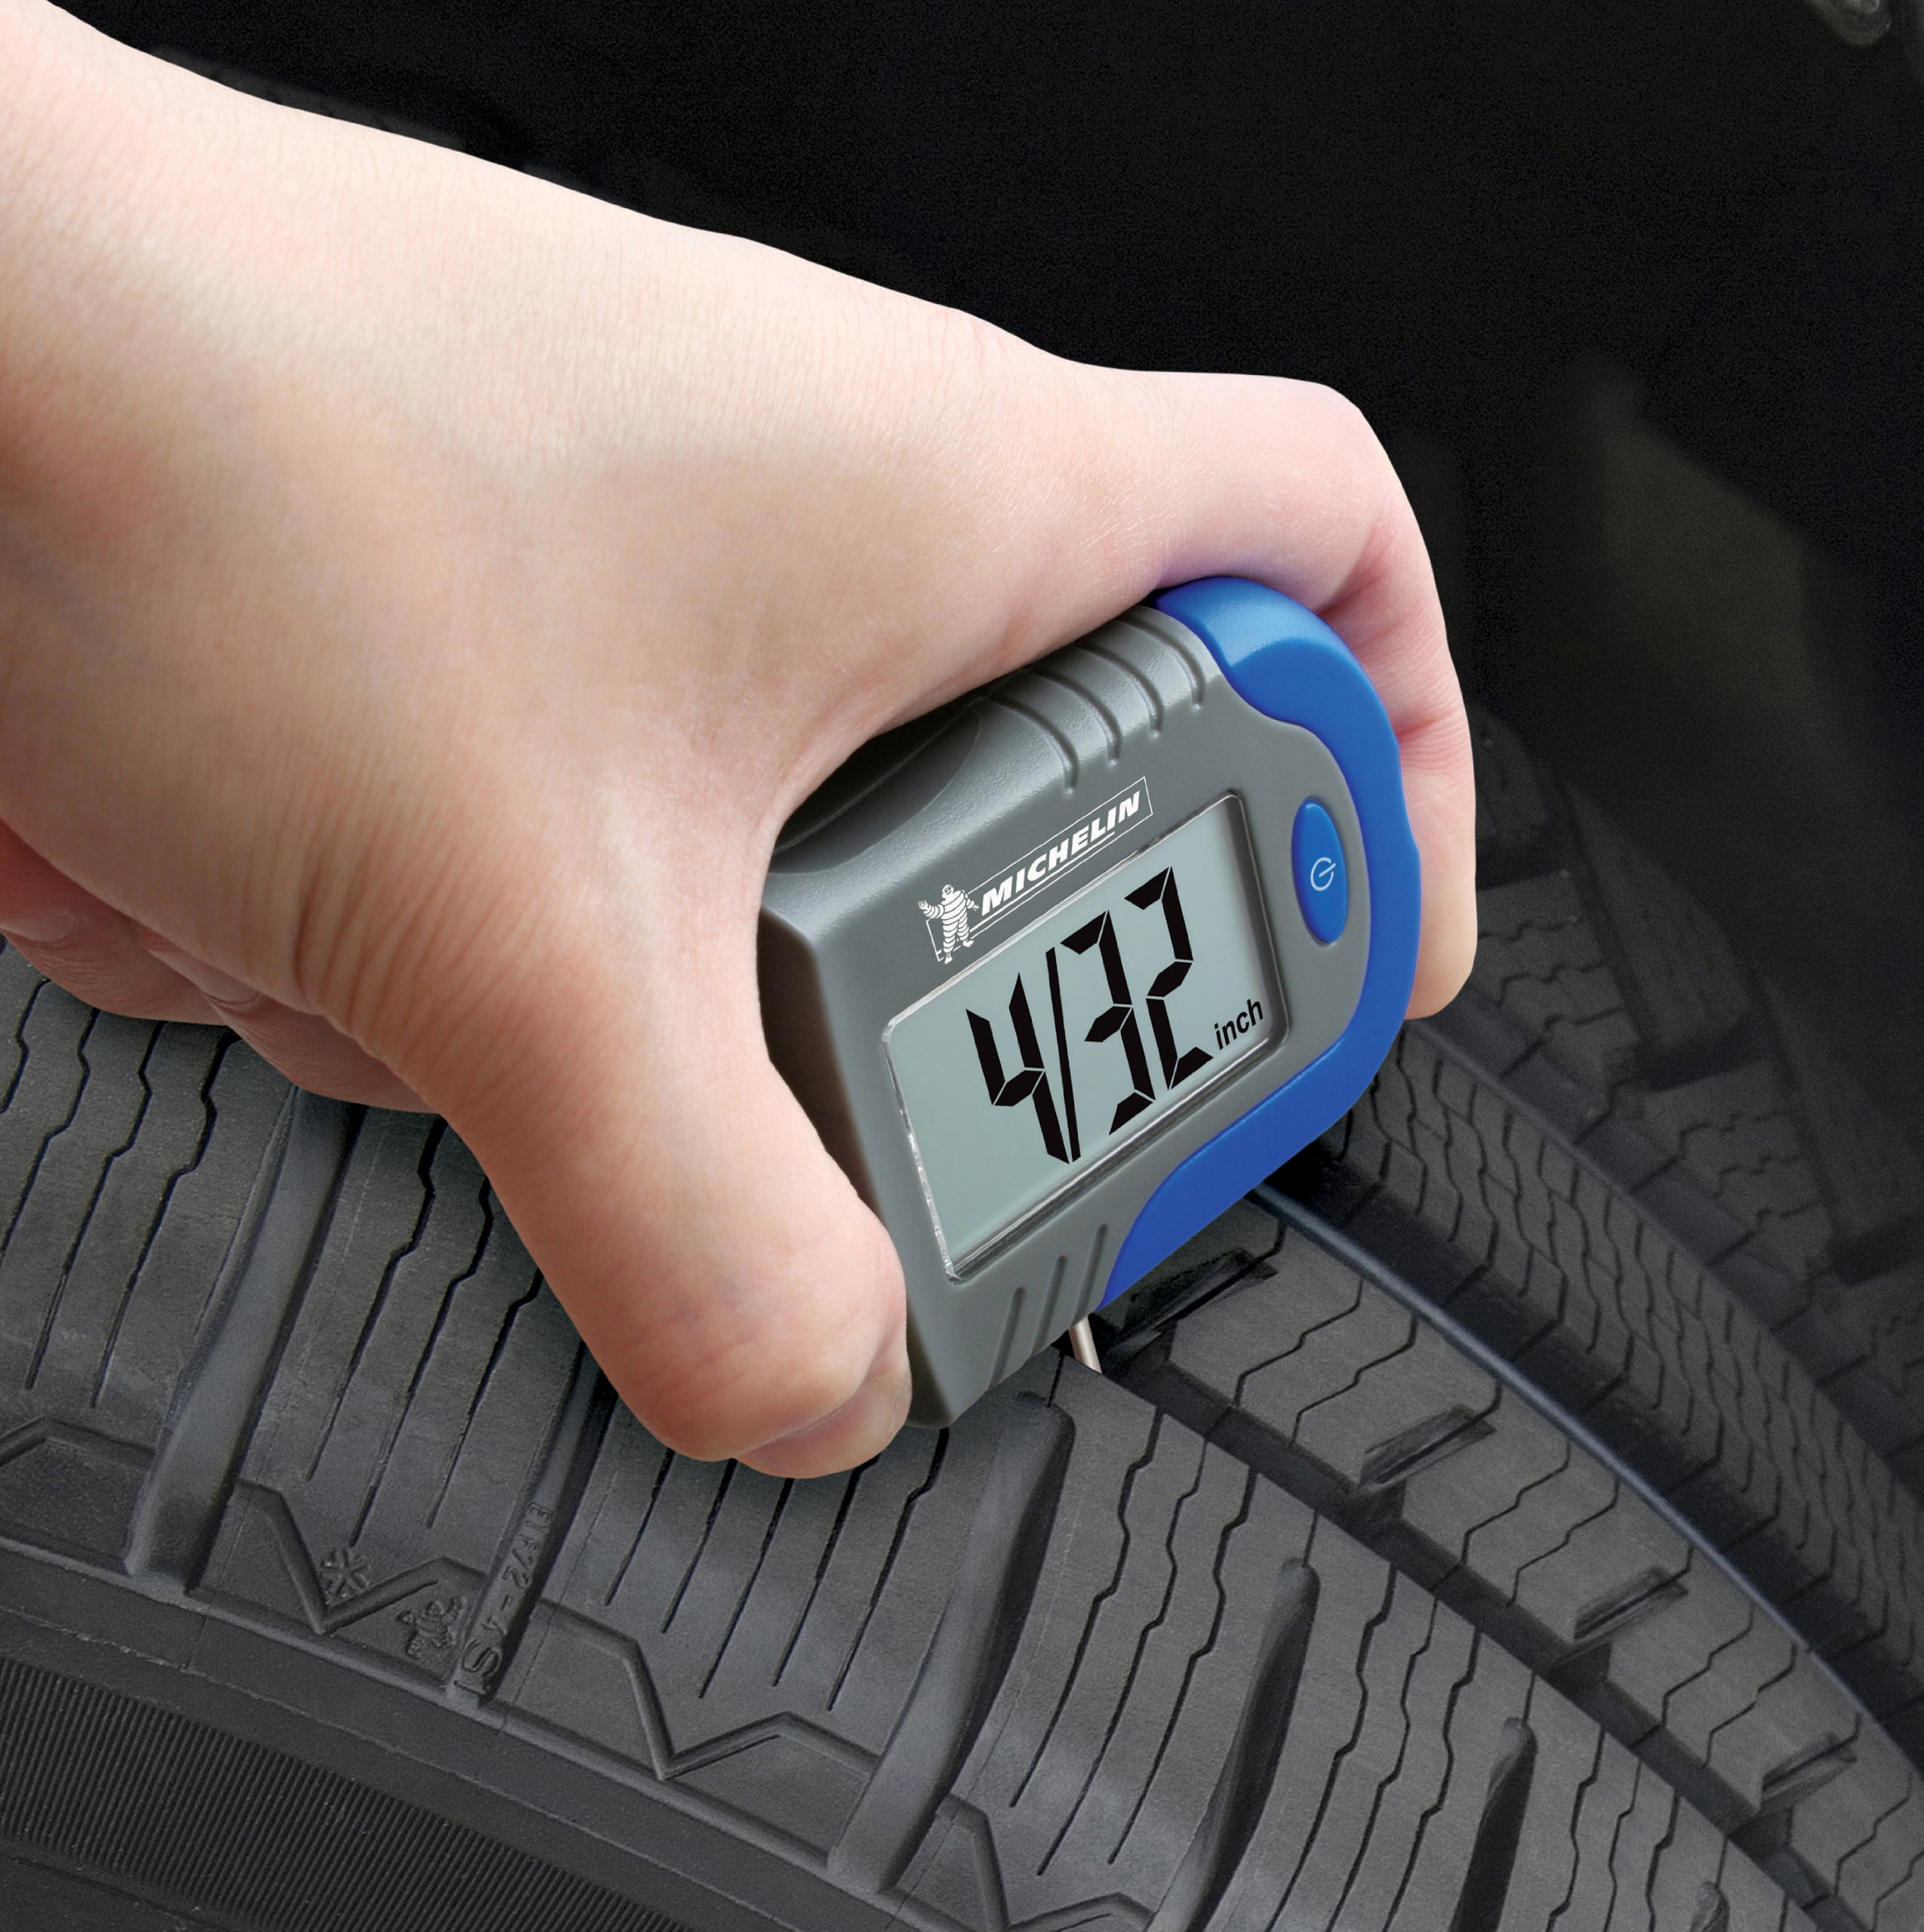 MICHELIN MN-4203B Digital Tire Gauge with Tread Depth Indicator by MICHELIN (Image #3)